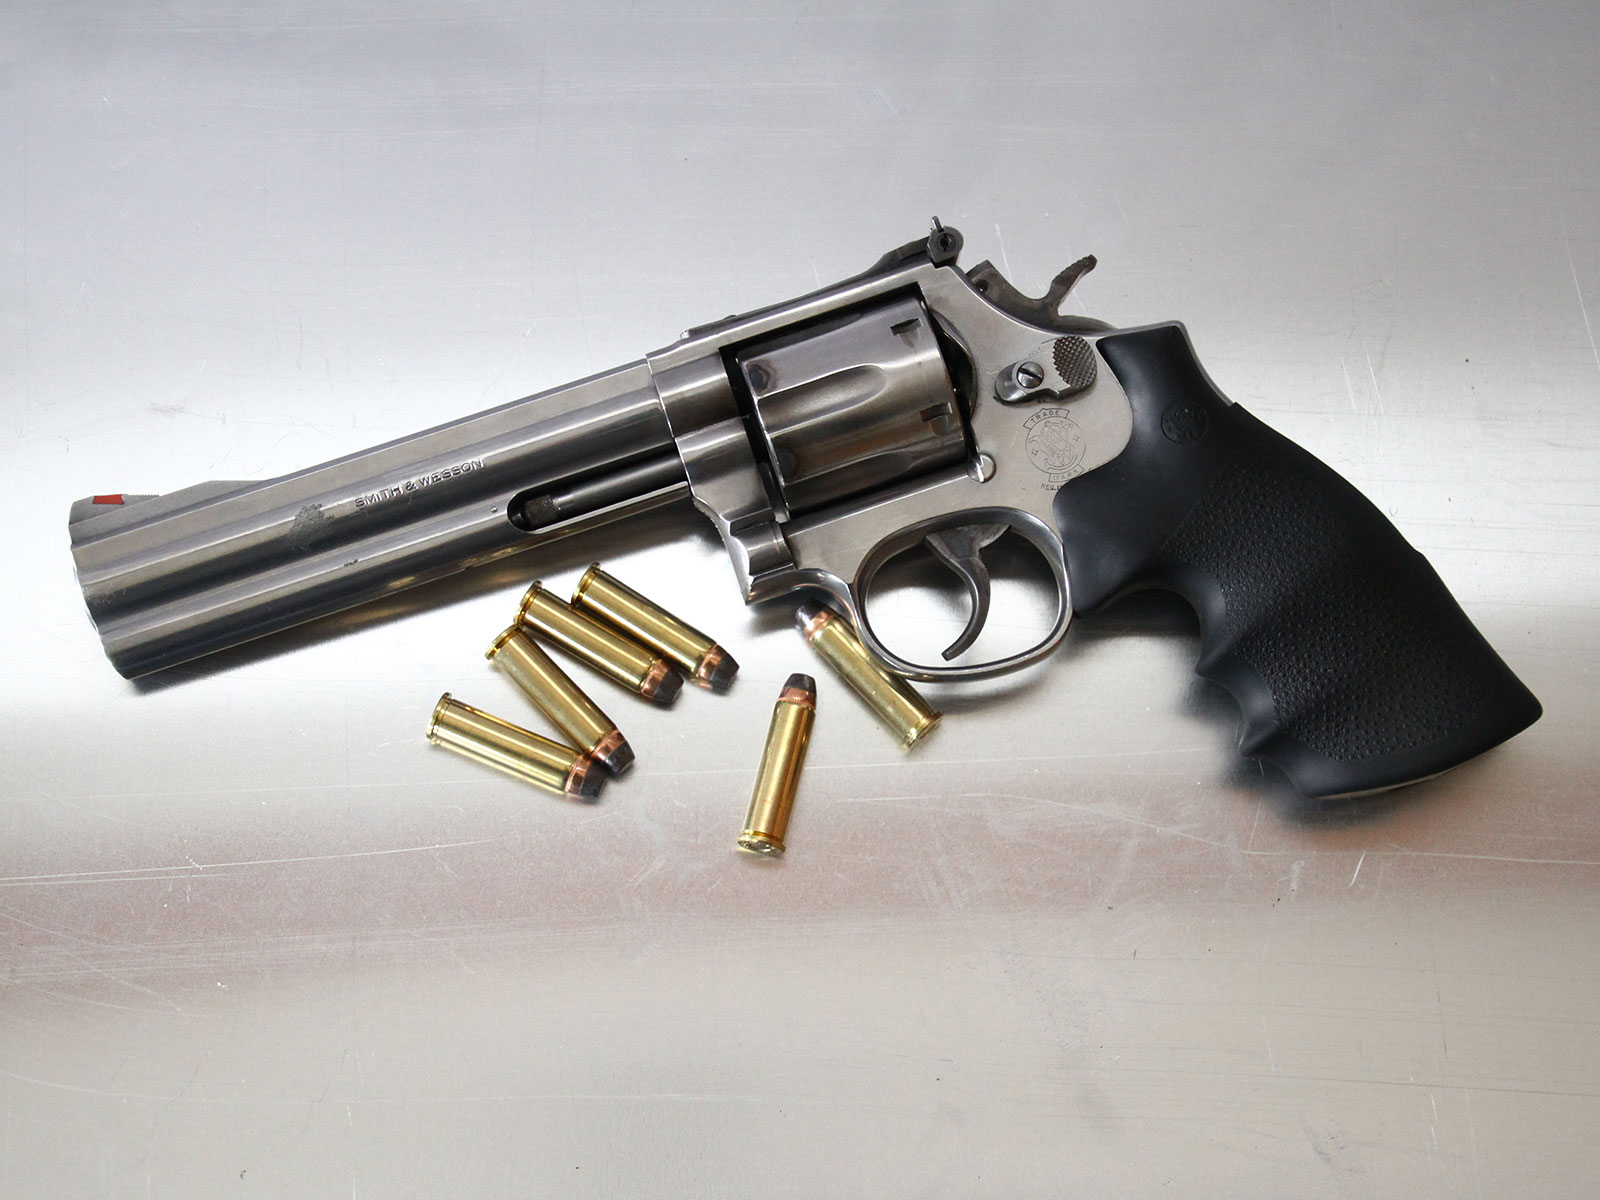 SH_Web_Wir_Waffen_Smith-Wesson-Revolver-1_1800x1200